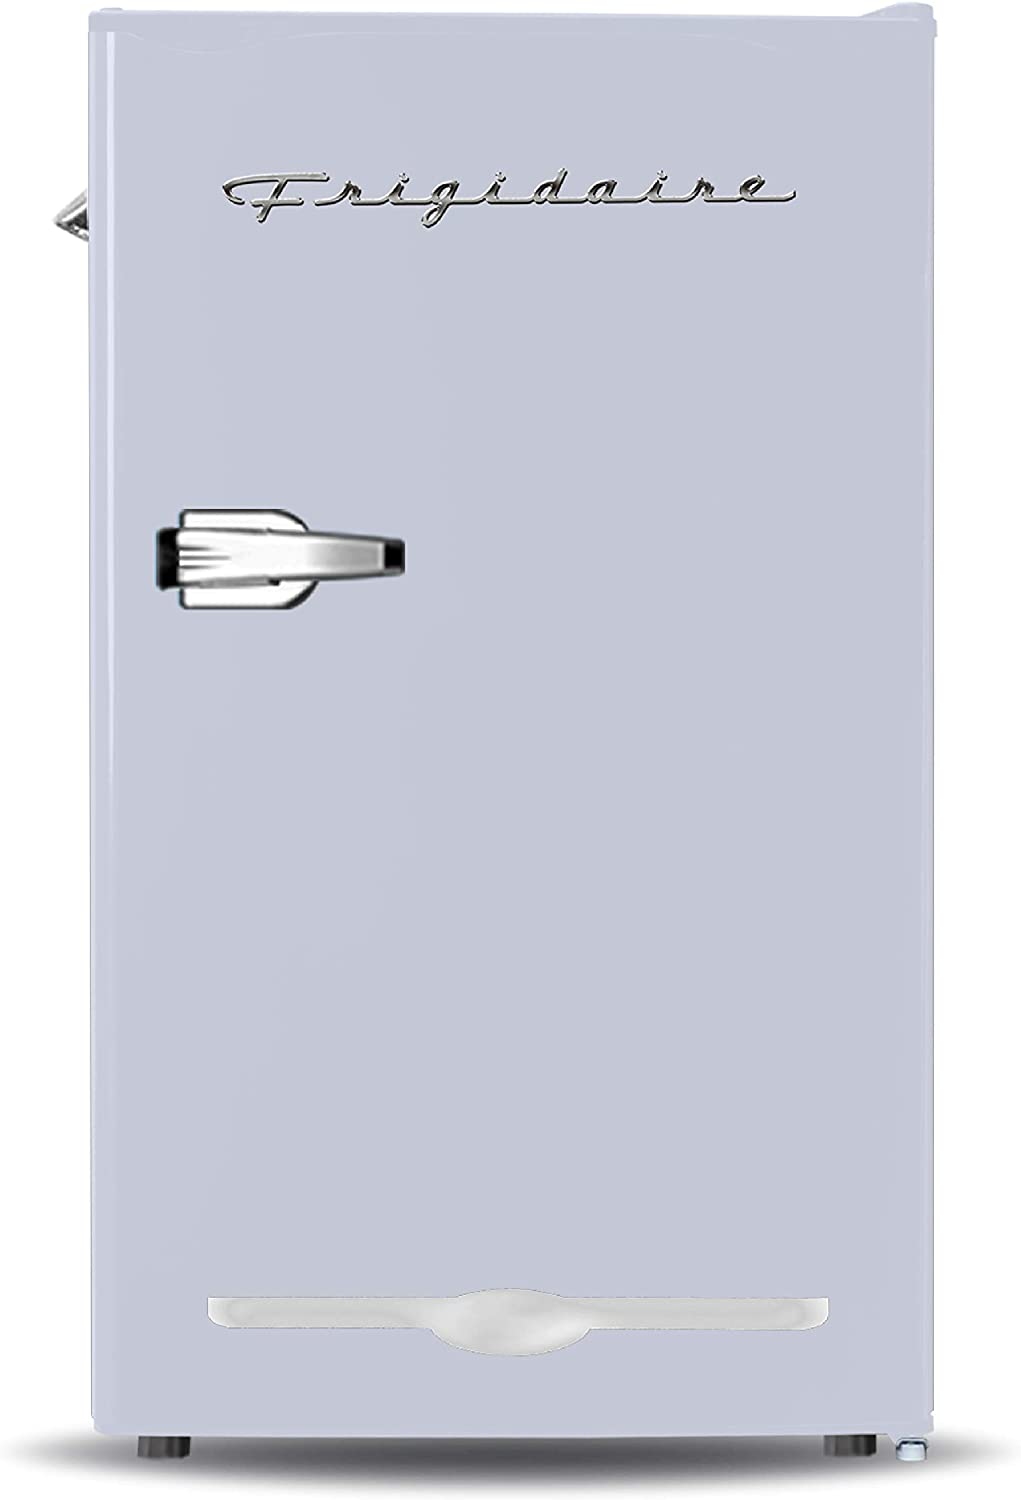 Frigidaire EFR376-MOONBM Retro Bar Fridge Refrigerator with Side Bottle Opener, 3.2 cu. Ft, Moonbeam